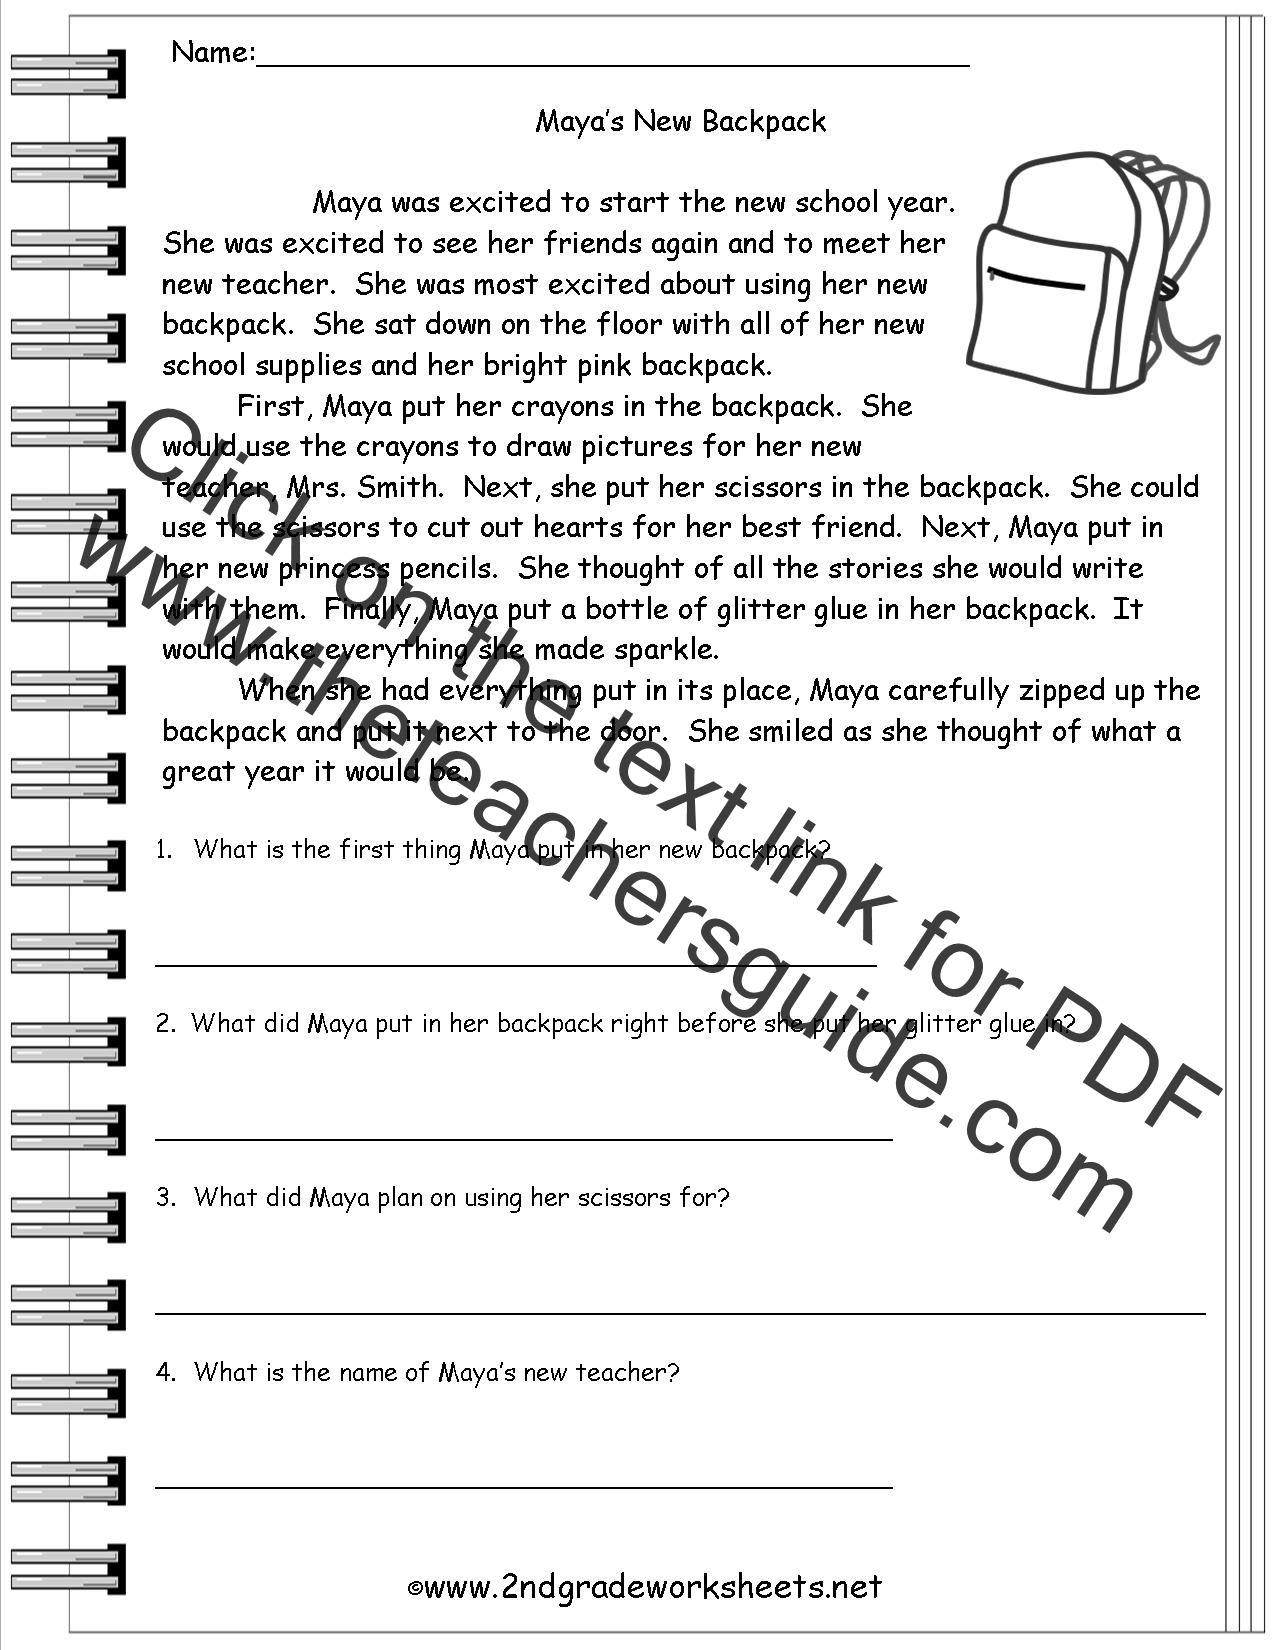 Worksheets Comprehension Passages For Grade 1 reading worksheeets worksheets